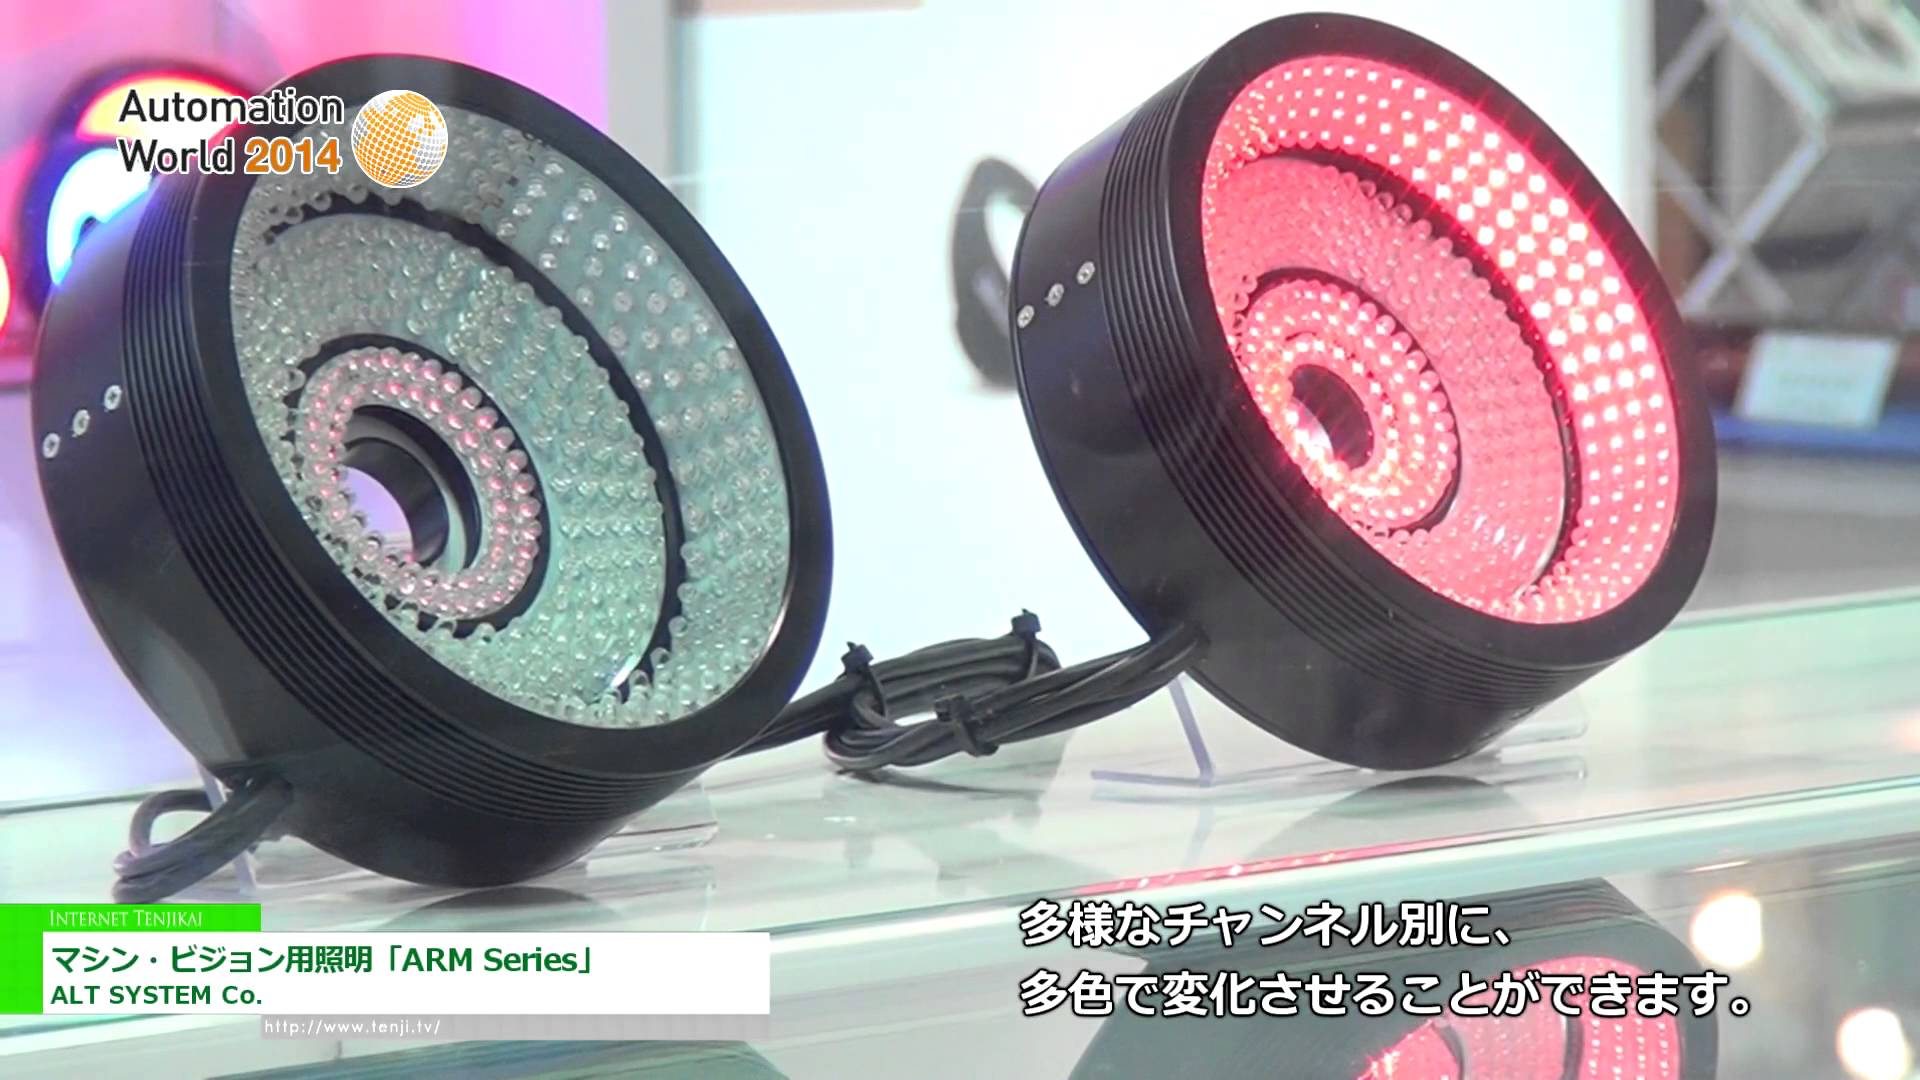 [Automation World 2014] マシン・ビジョン用照明「ARM Series」 - ALT SYSTEM Co.